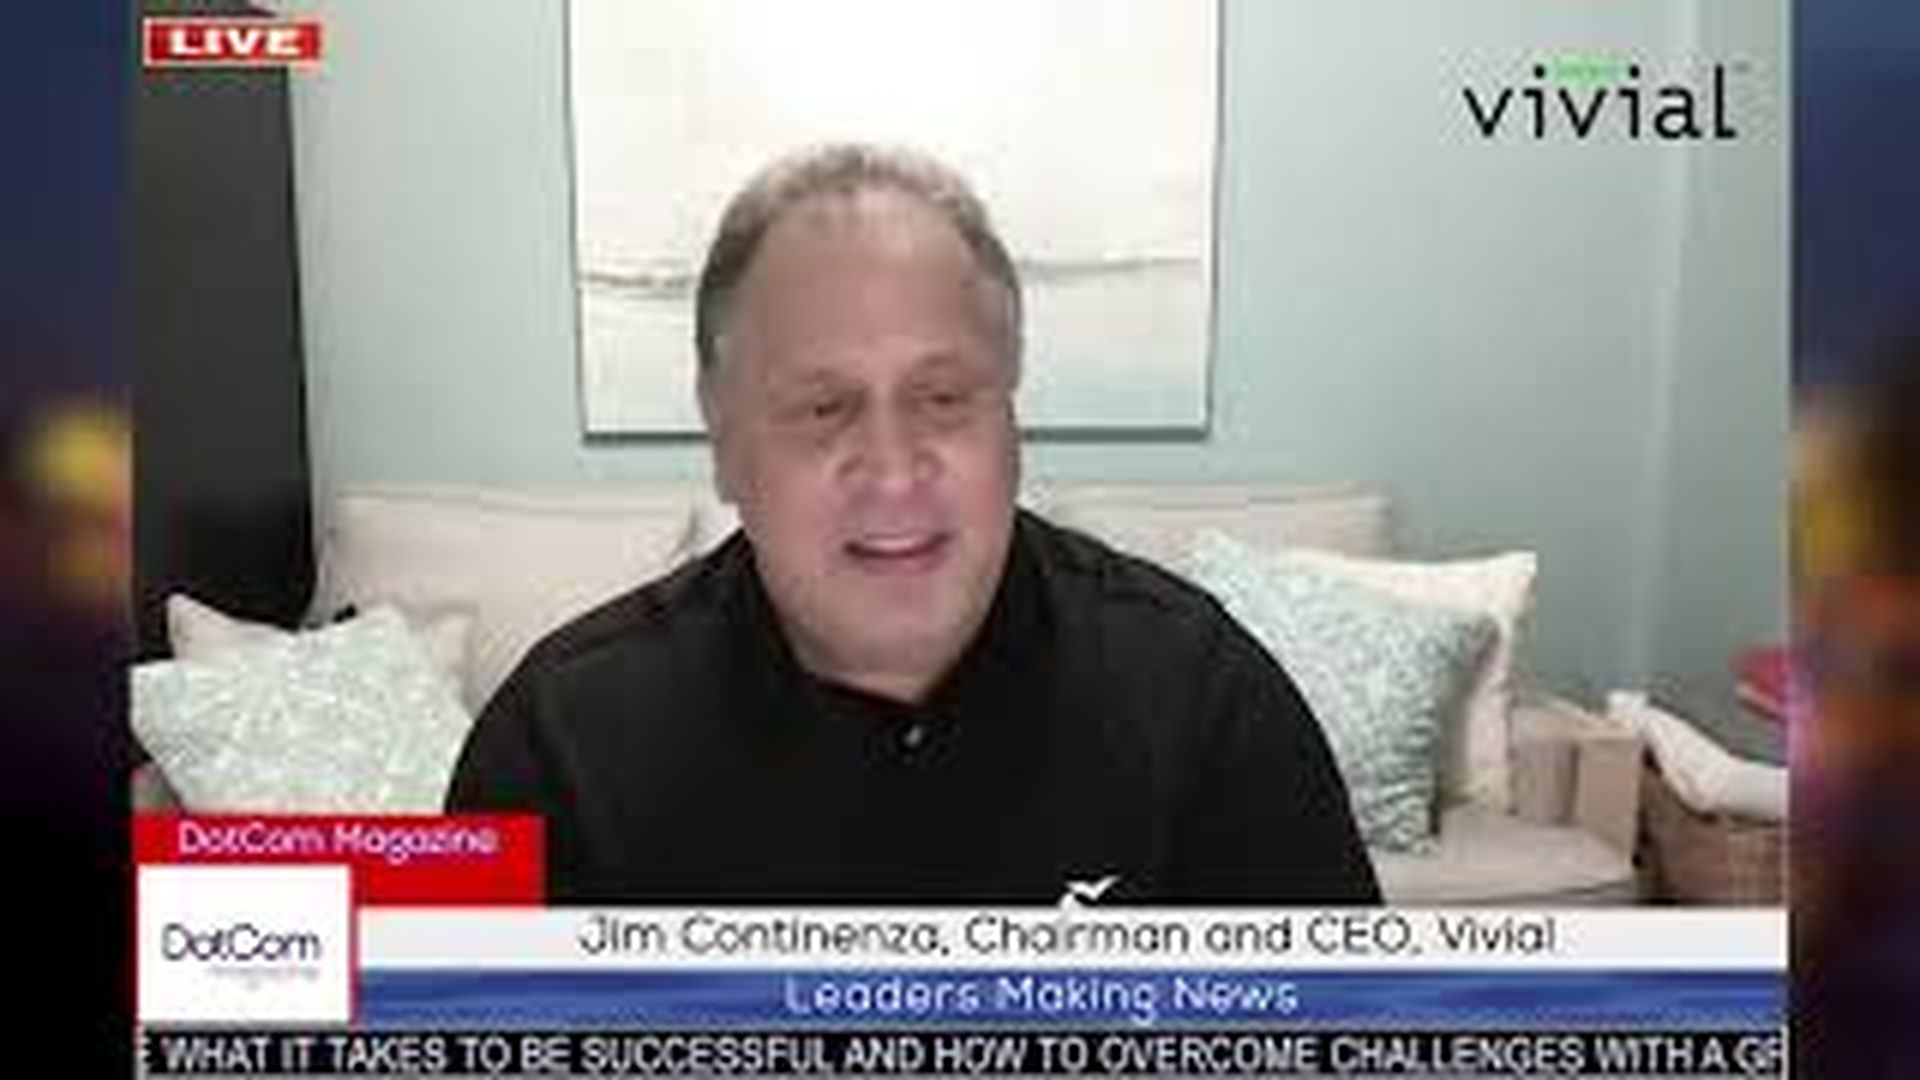 Jim Continenza, Chairman and CEO, Vivial, A DotCom Magazine Exclusive Interview